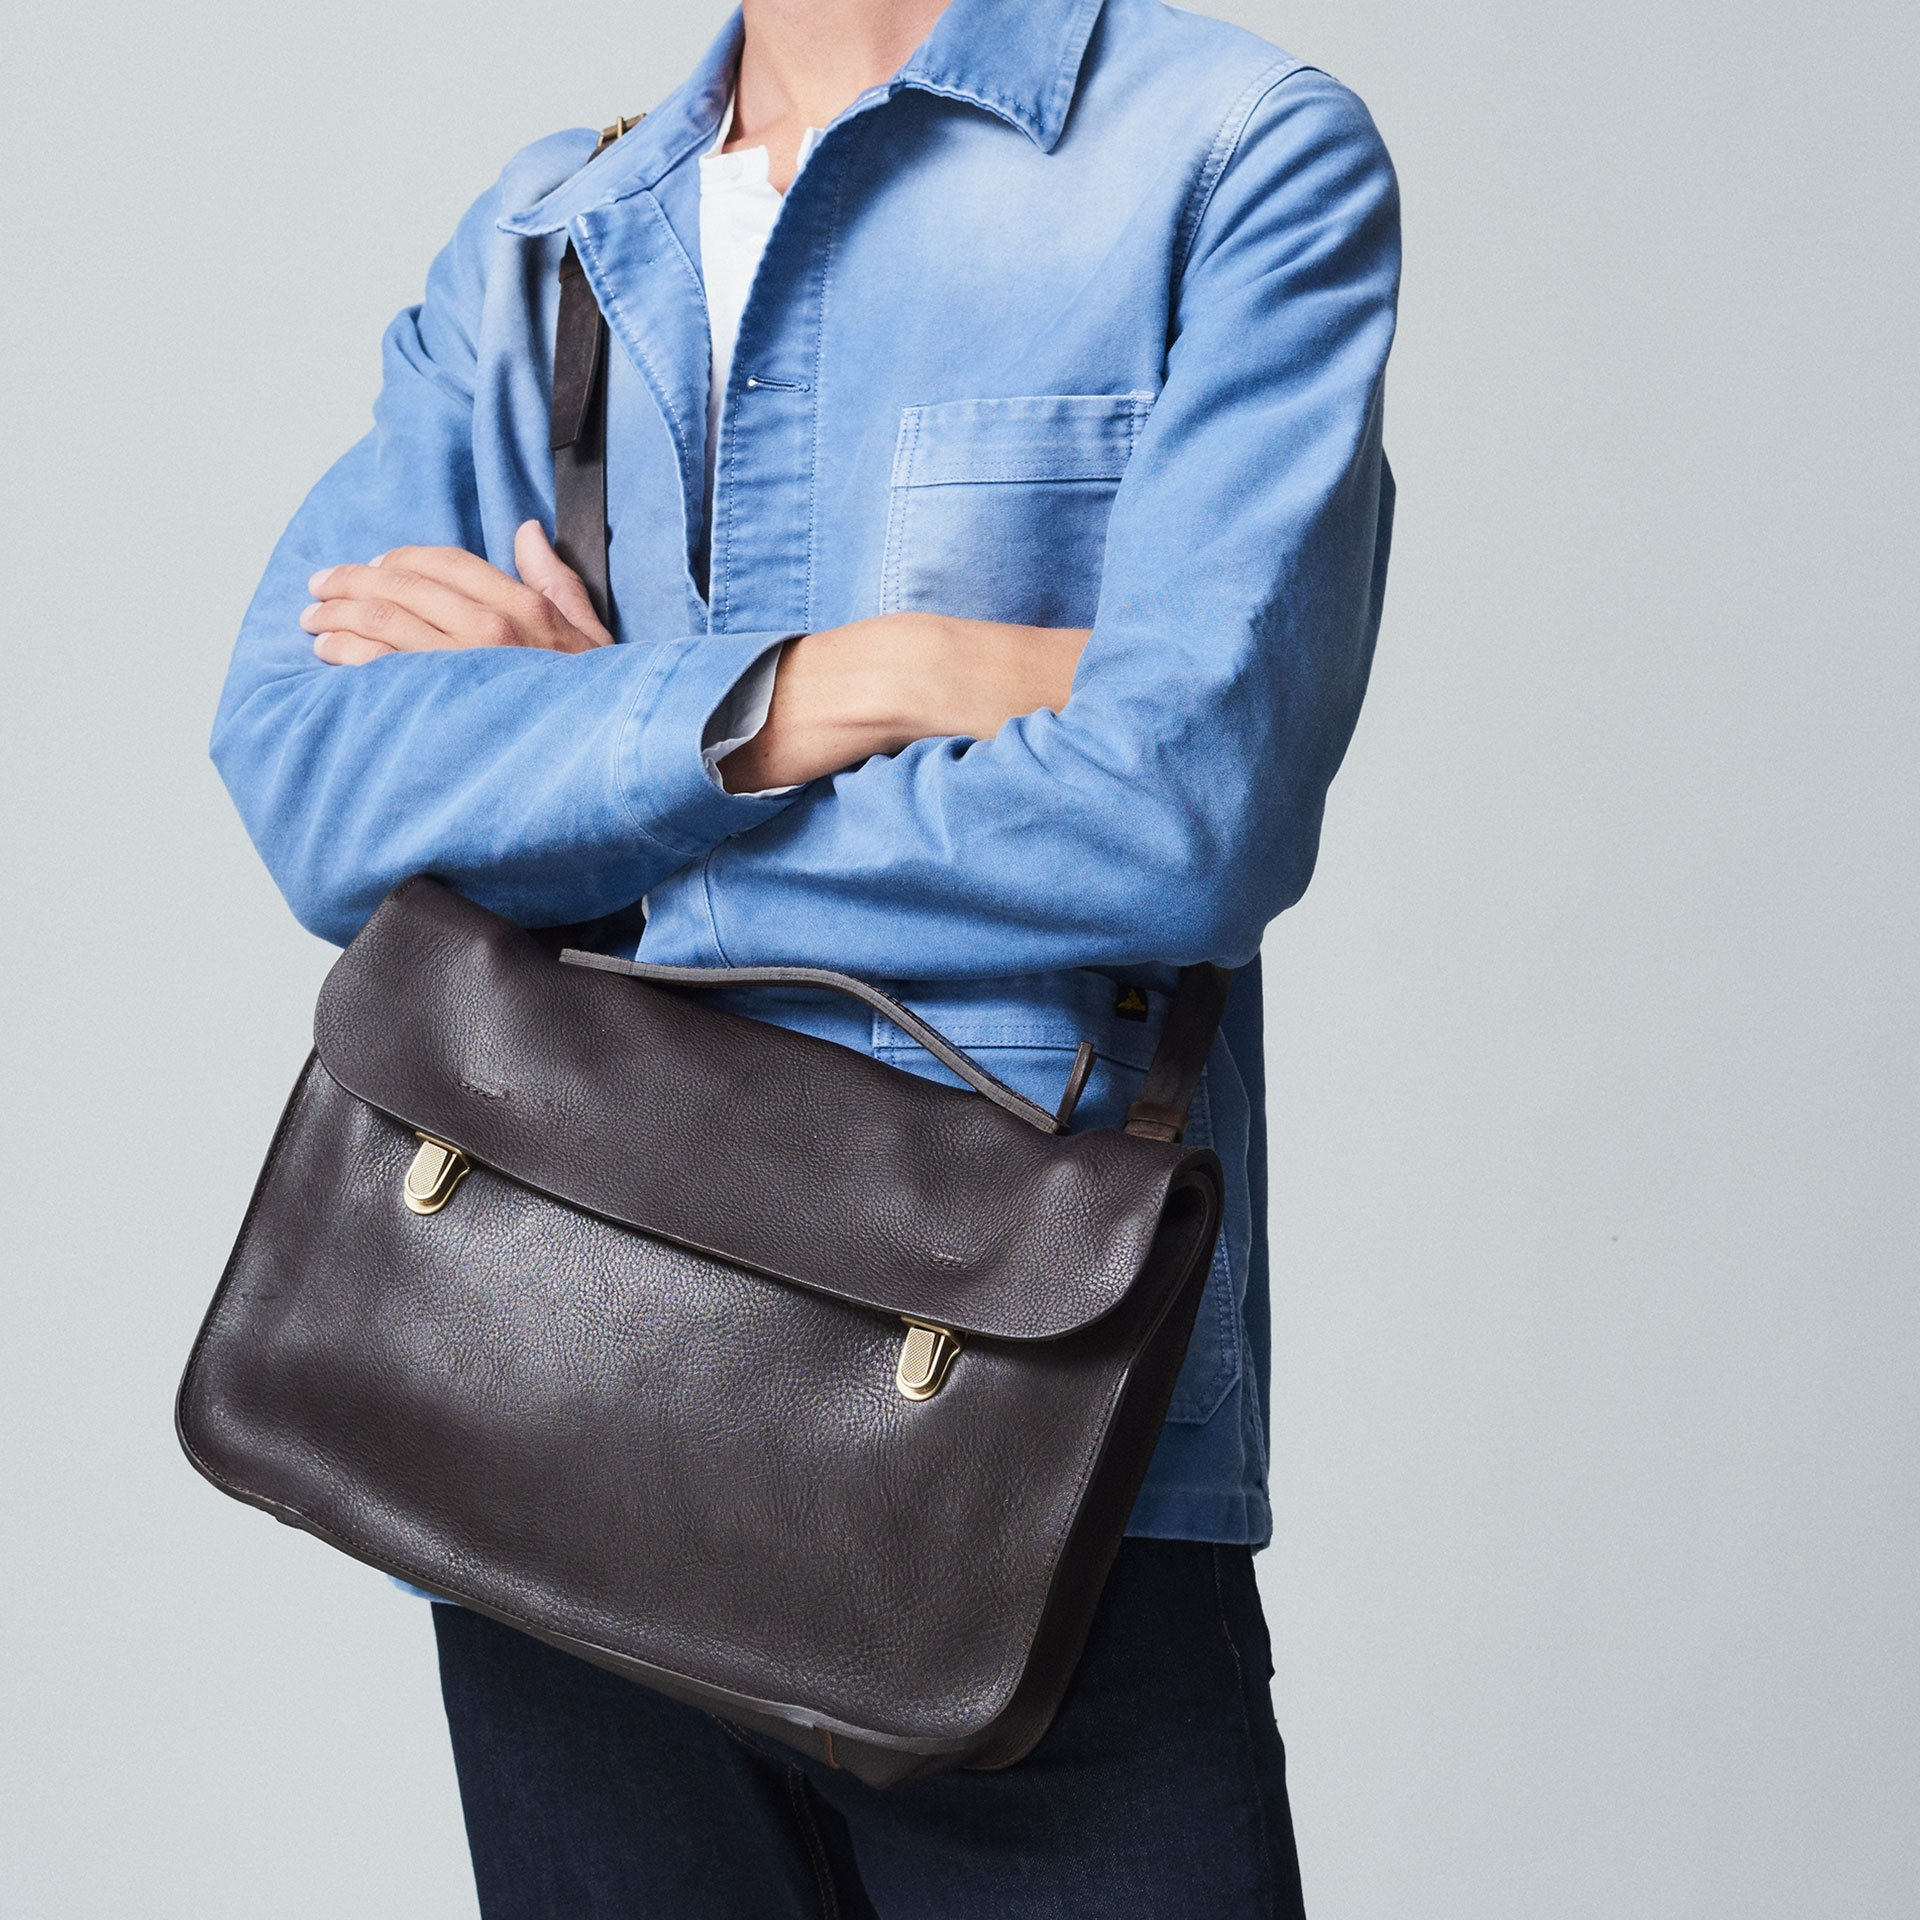 Groucho Leather Satchel - Peat / E Pure (image n°6)